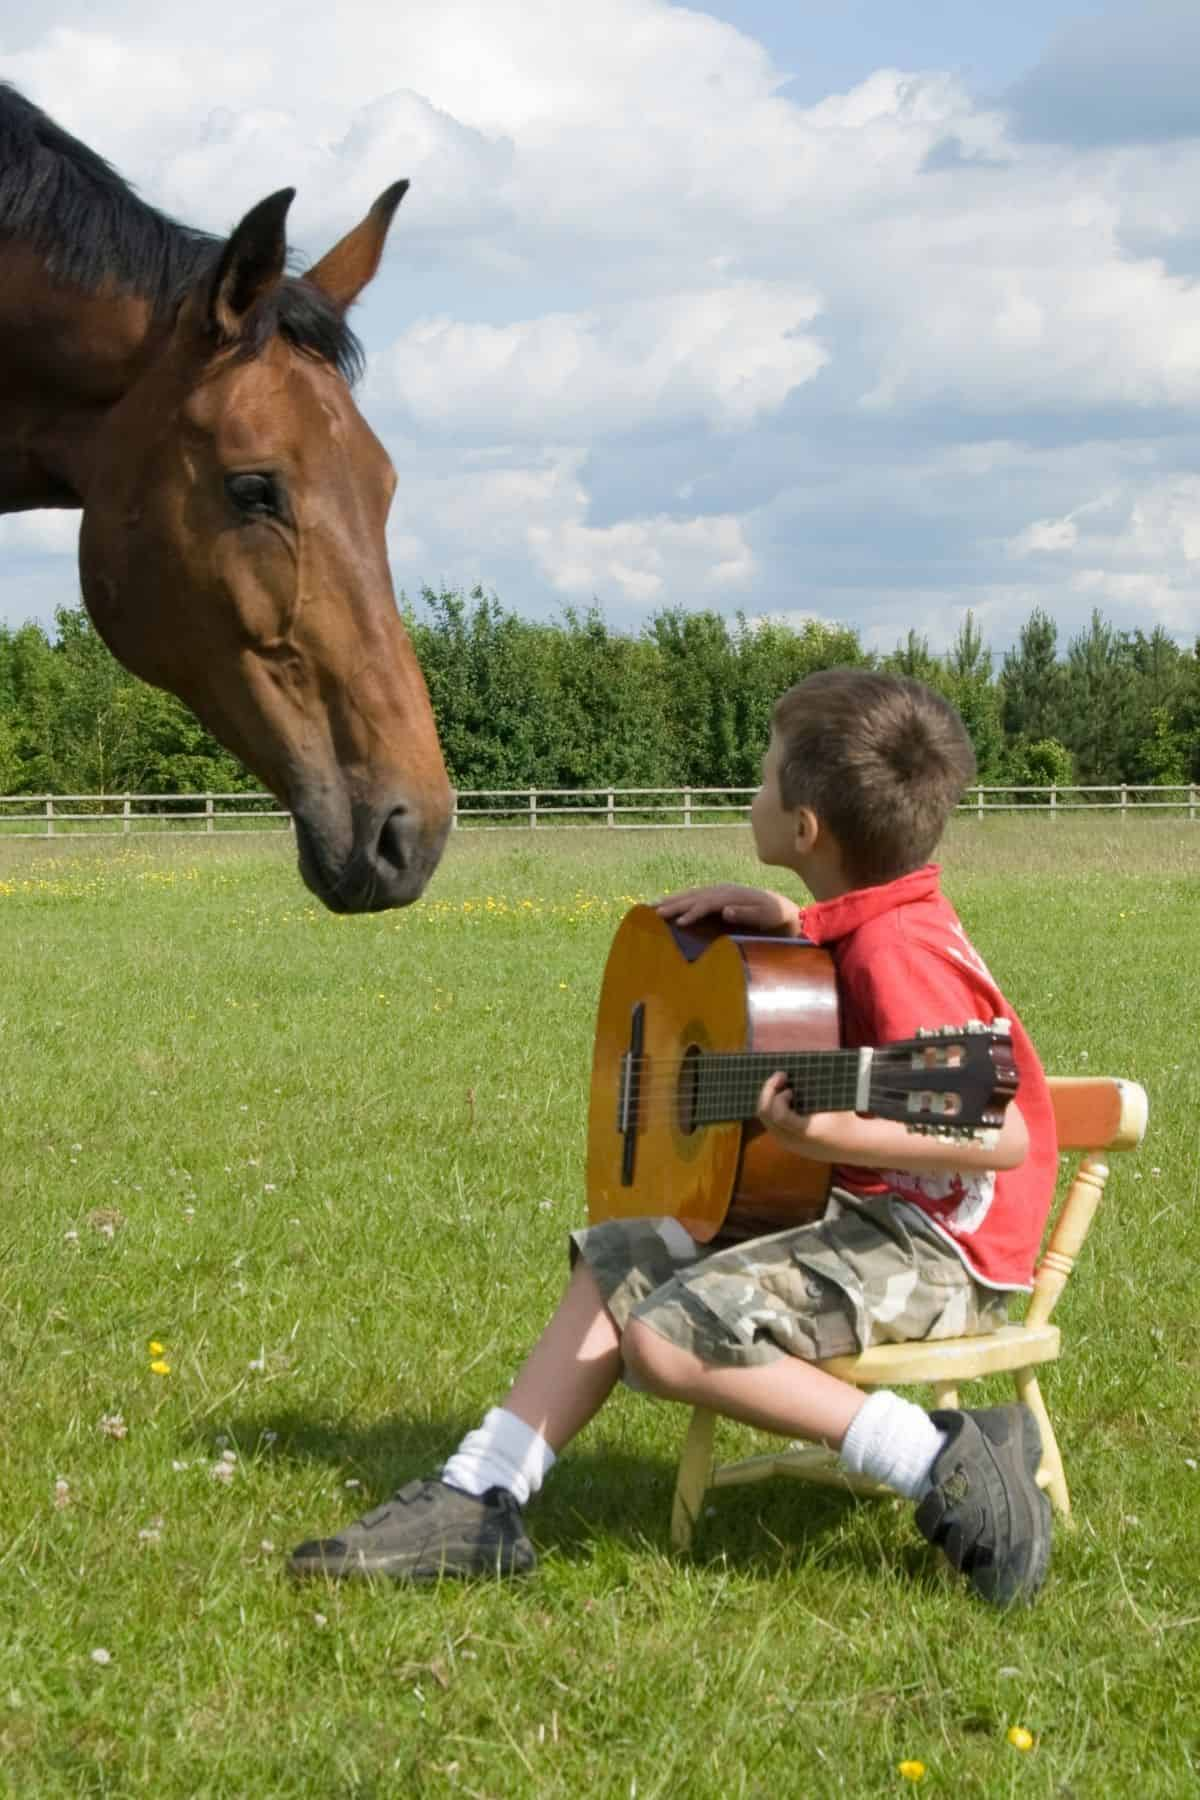 Little boy playing guitar in front of brown horse